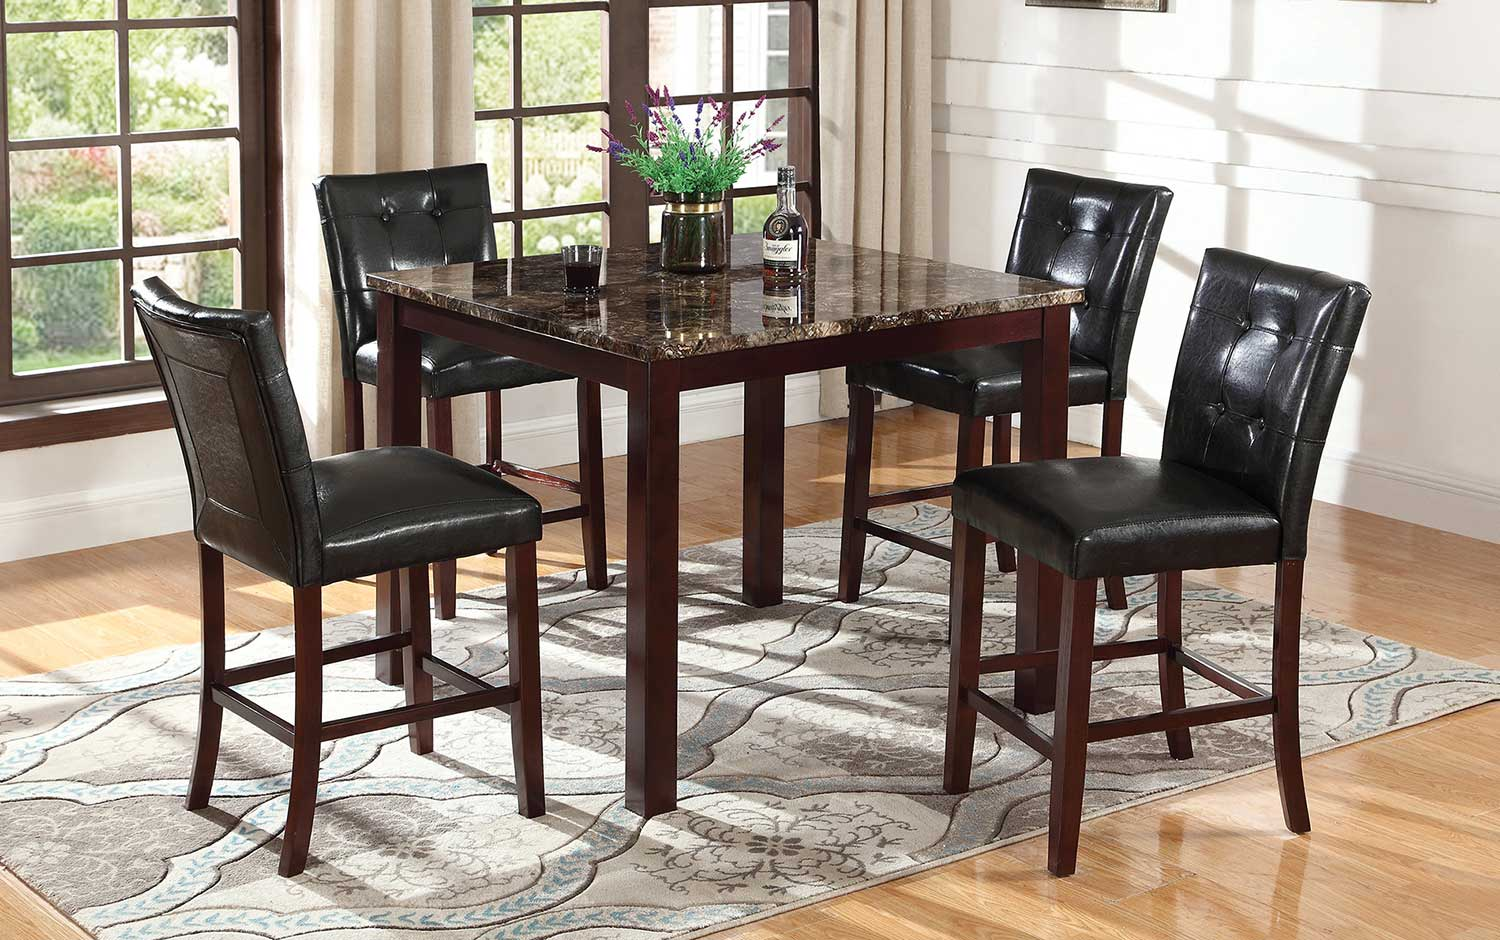 Coaster Ducey Counter Dining Set - Dark Brown